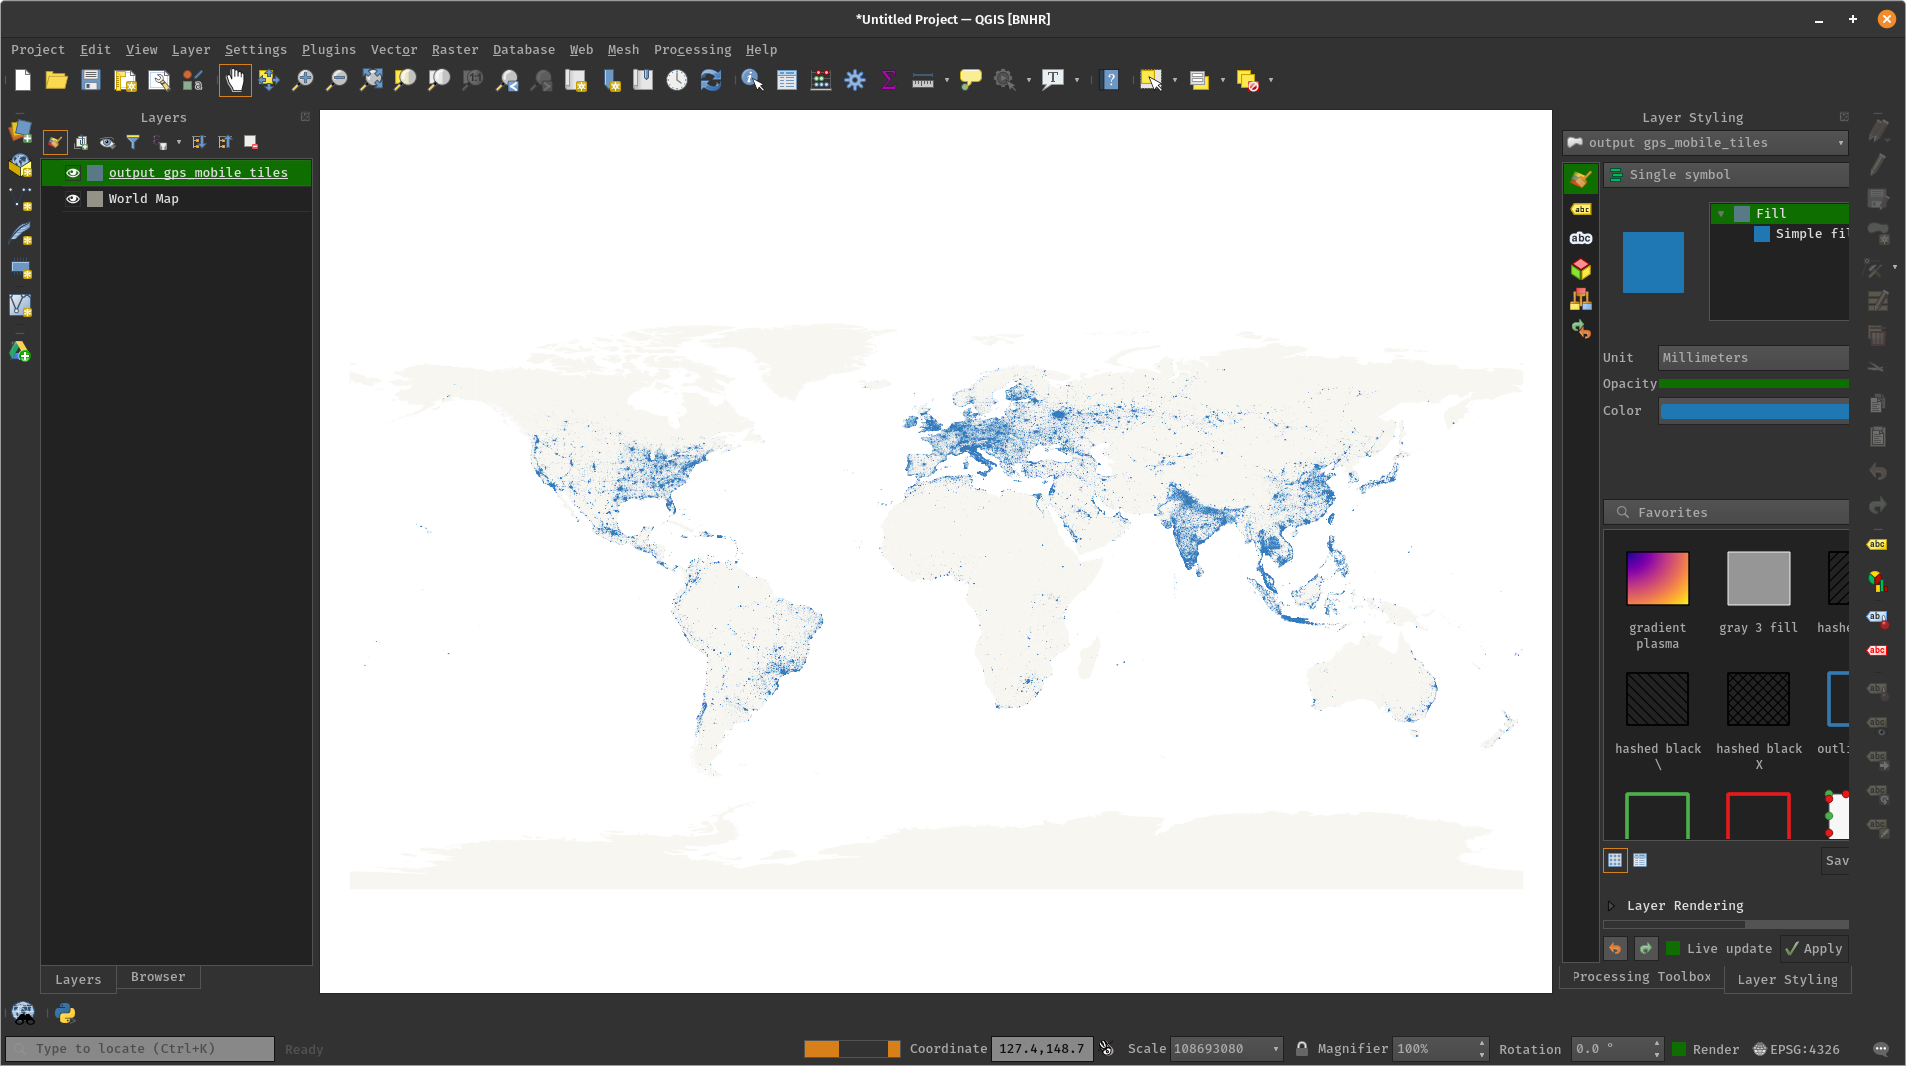 Ookla Global Fixed and Mobile Network Performance Maps in QGIS